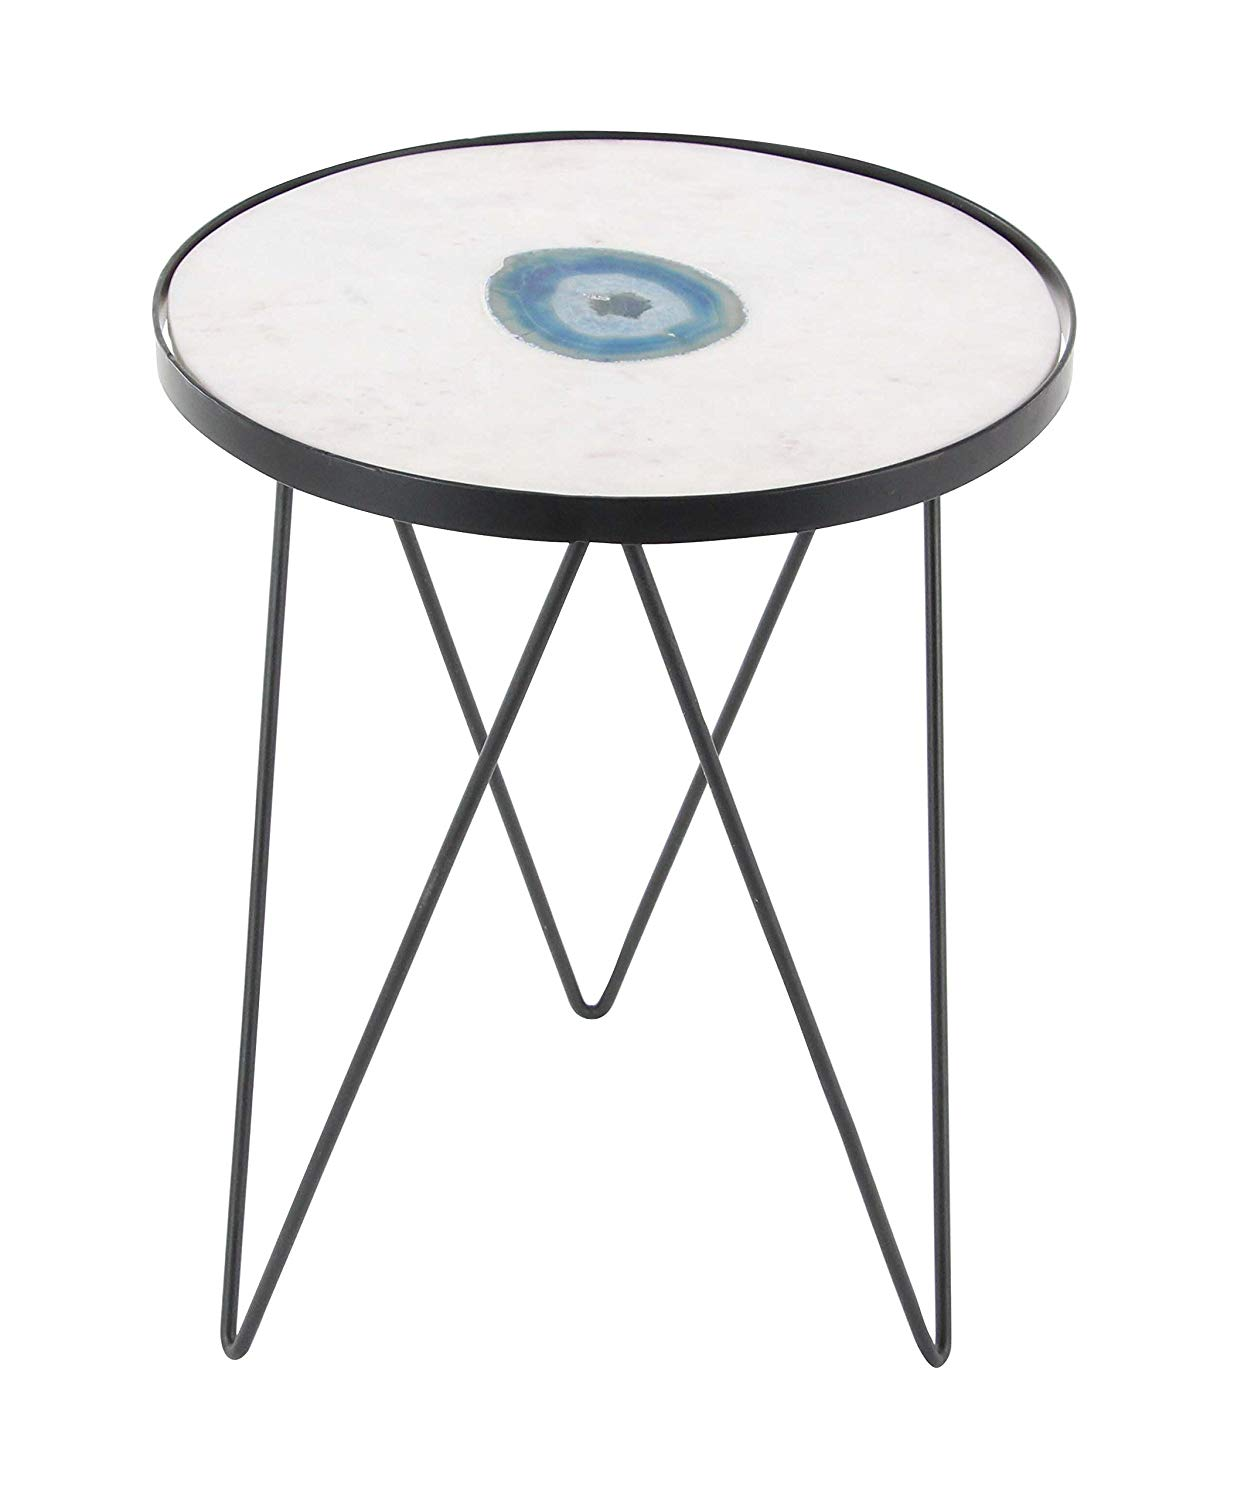 charming white marble and metal round accent table small for faux tablecloth pedestal wooden unfinished wood ideas covers decorating threshold side full size target rose gold pier